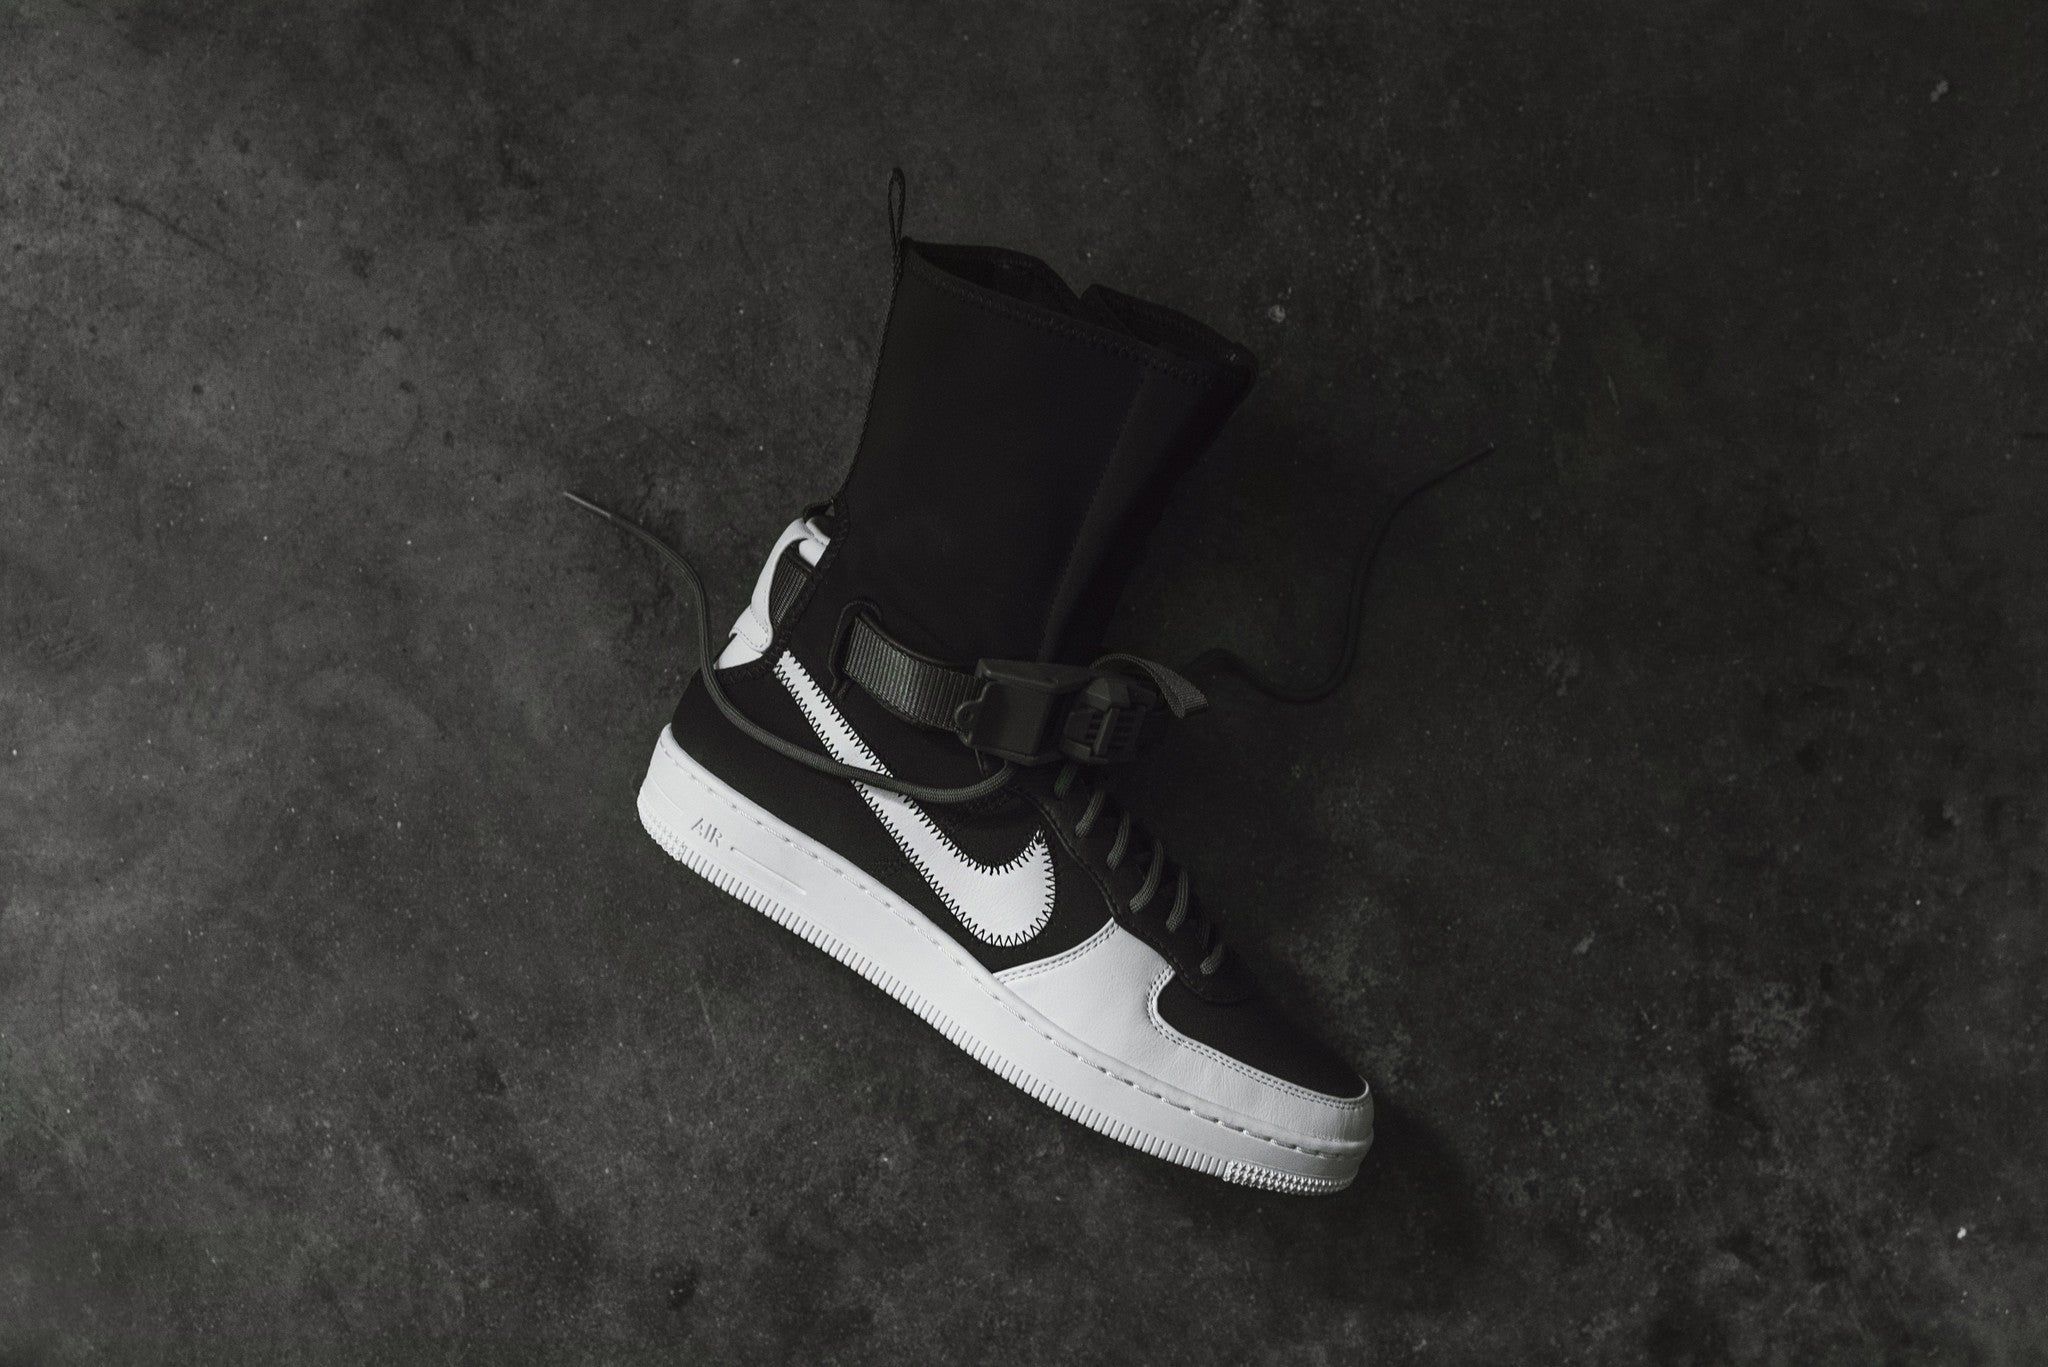 b6c7b4e3d1ca5b NikeLab x Acronym Air Force 1 Downtown High SP - Black   White  Olive.  February 09